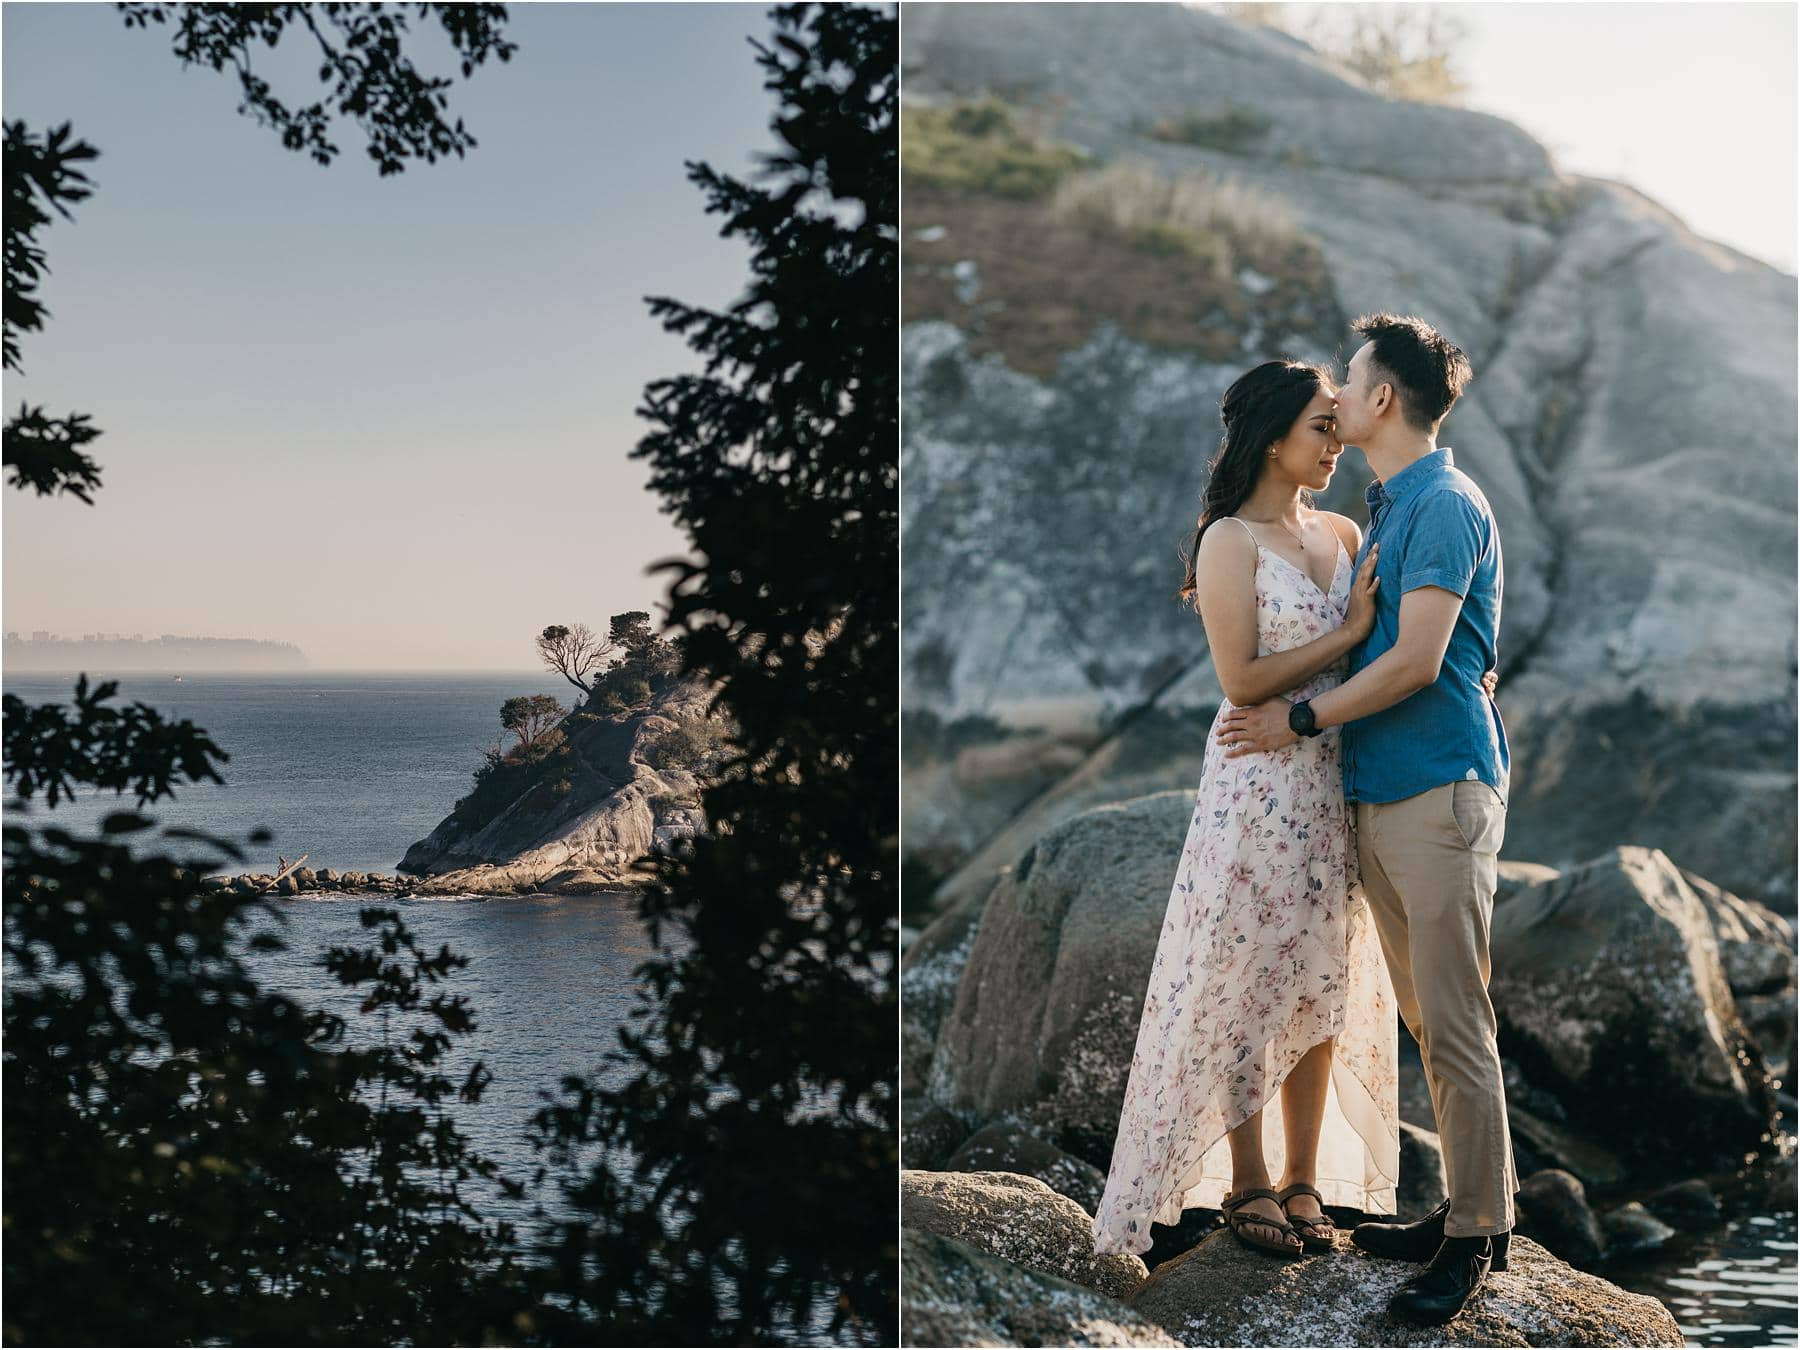 Photograph of the famous islet at whytecliff park - Top 5 Locations for your engagement shoot in vancouver